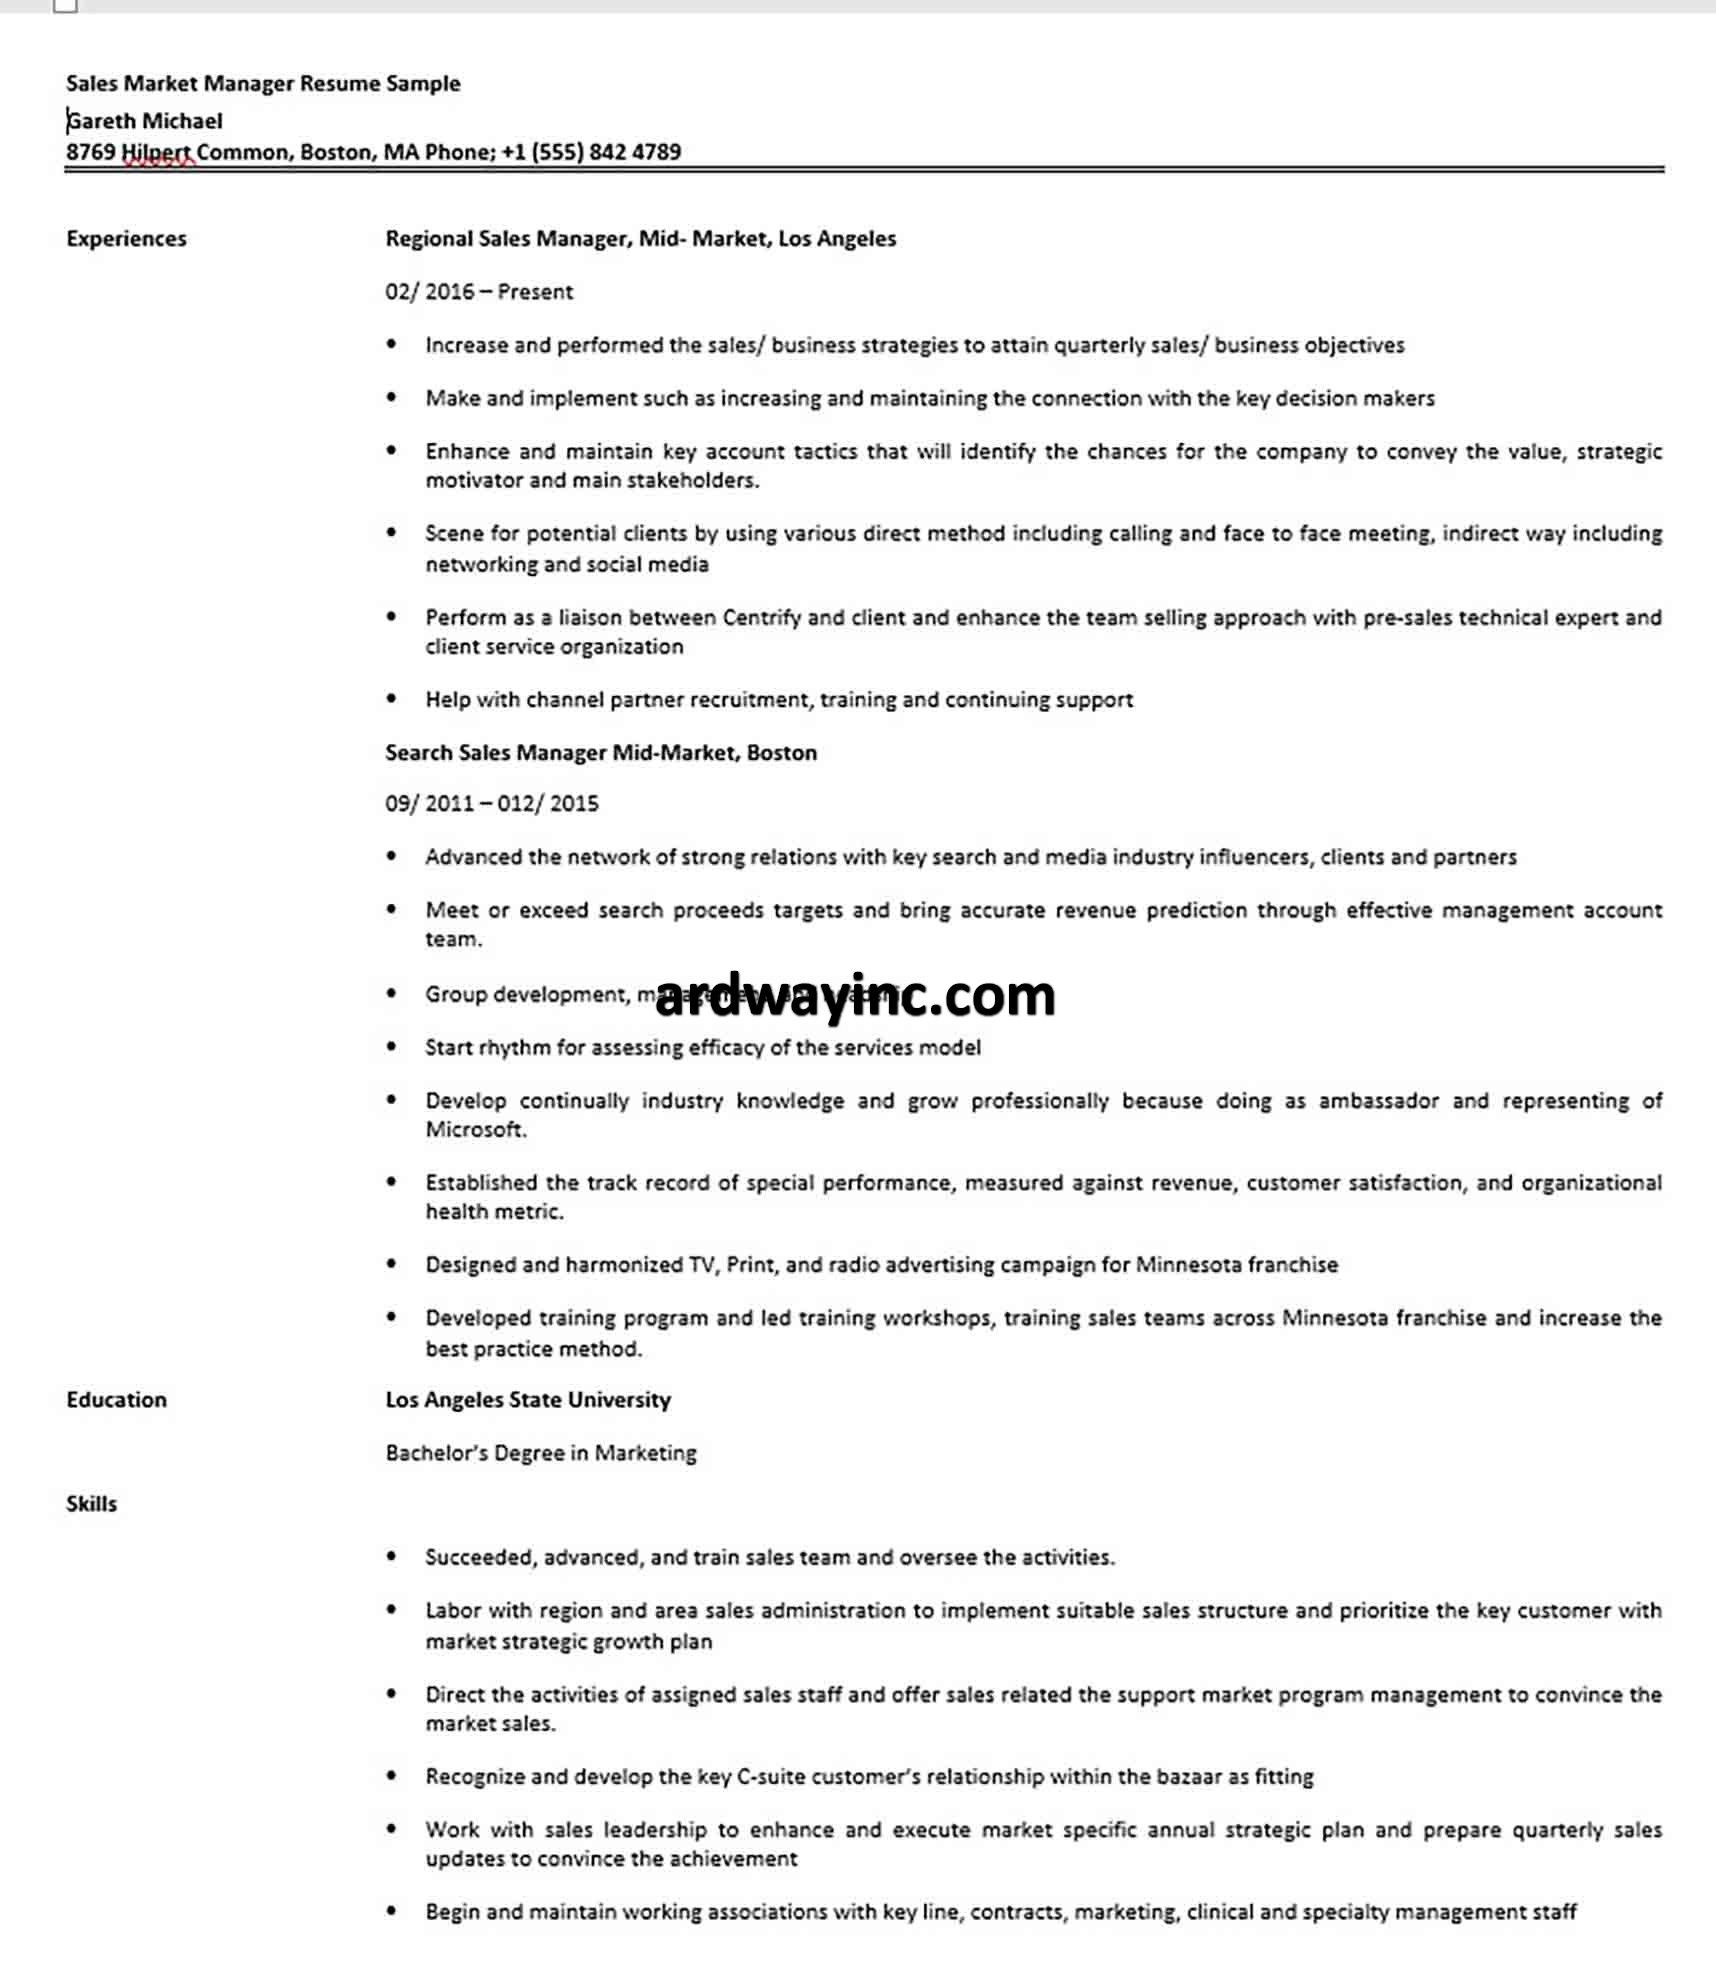 Sales Market Manager Resume Sample in 2020 Public